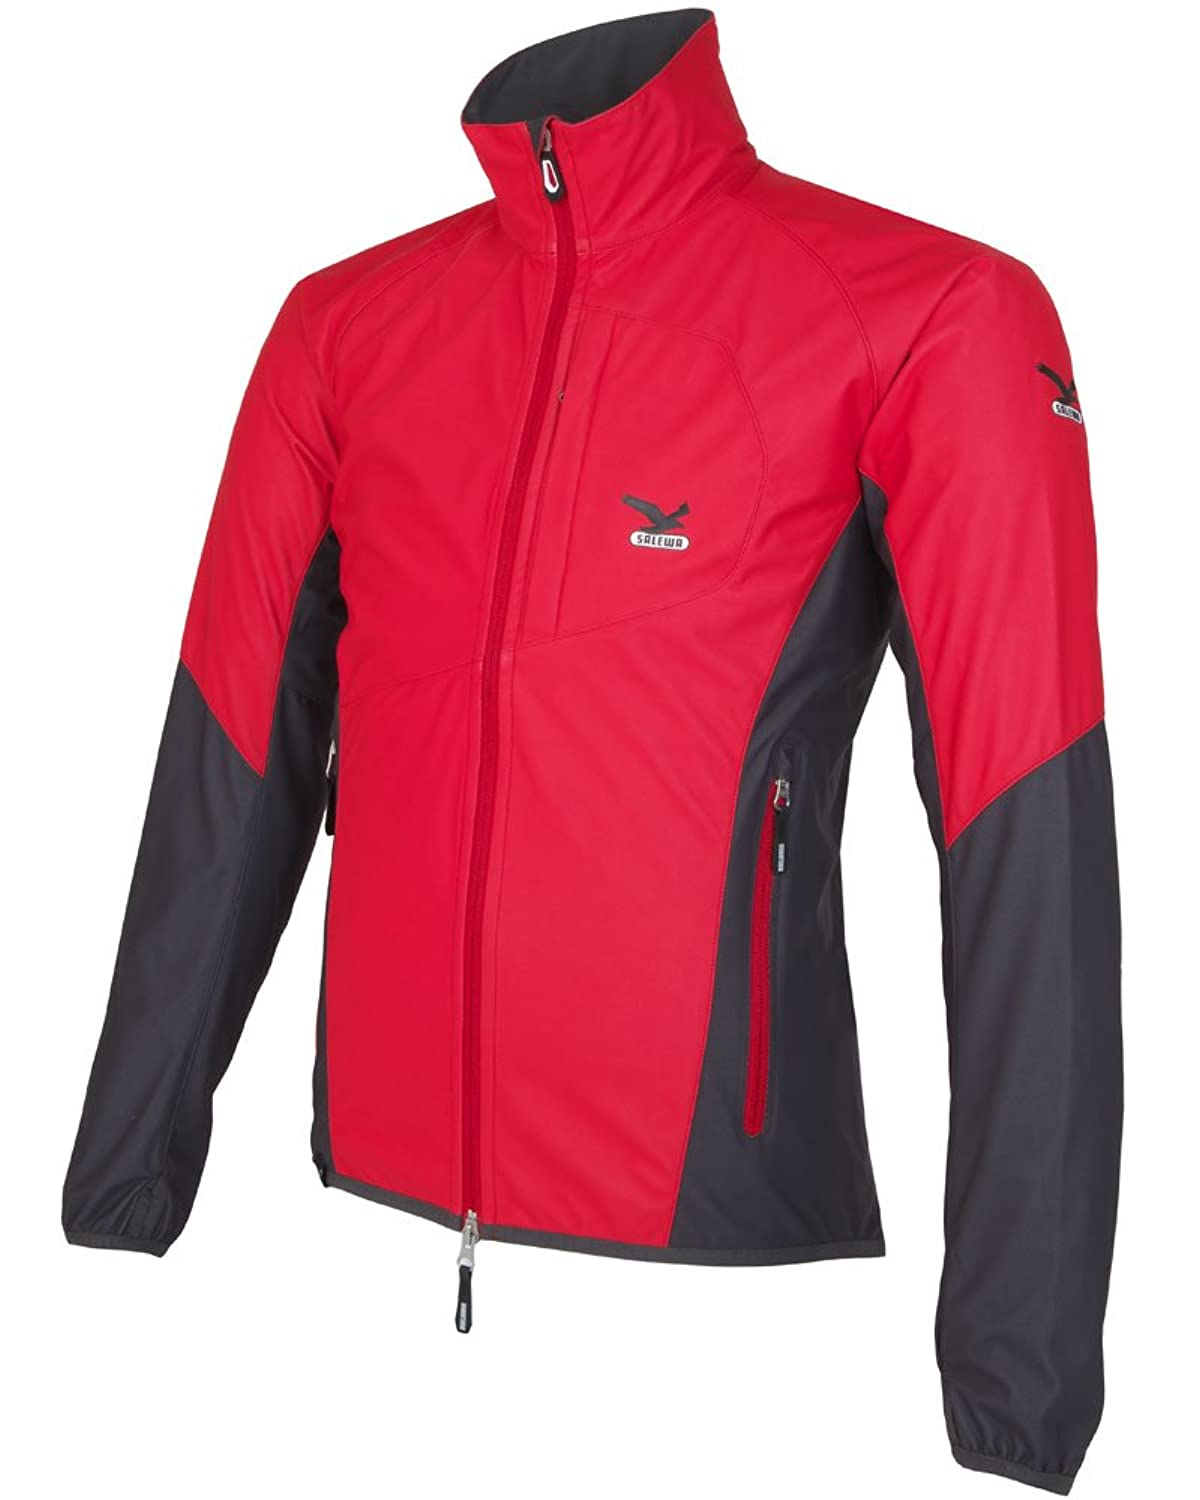 Salewa Windbreakerjacke Men's Houni WS Jacket red (Größe: M) günstig bestellen